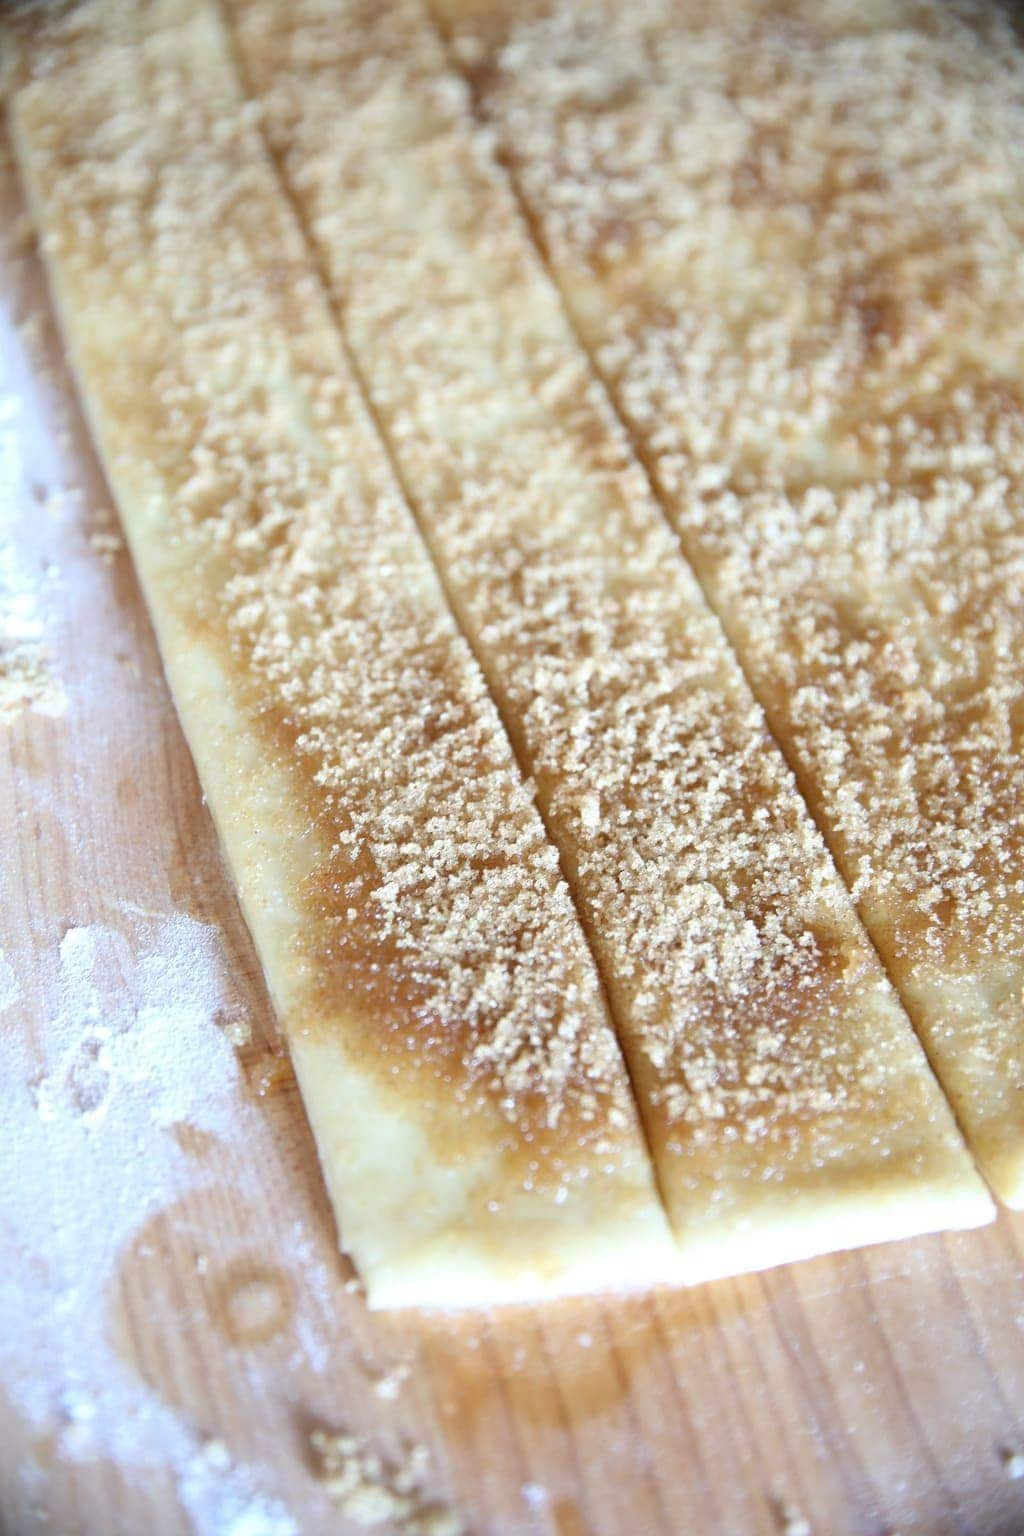 Sugar and cinnamon sprinkled on strips of dough